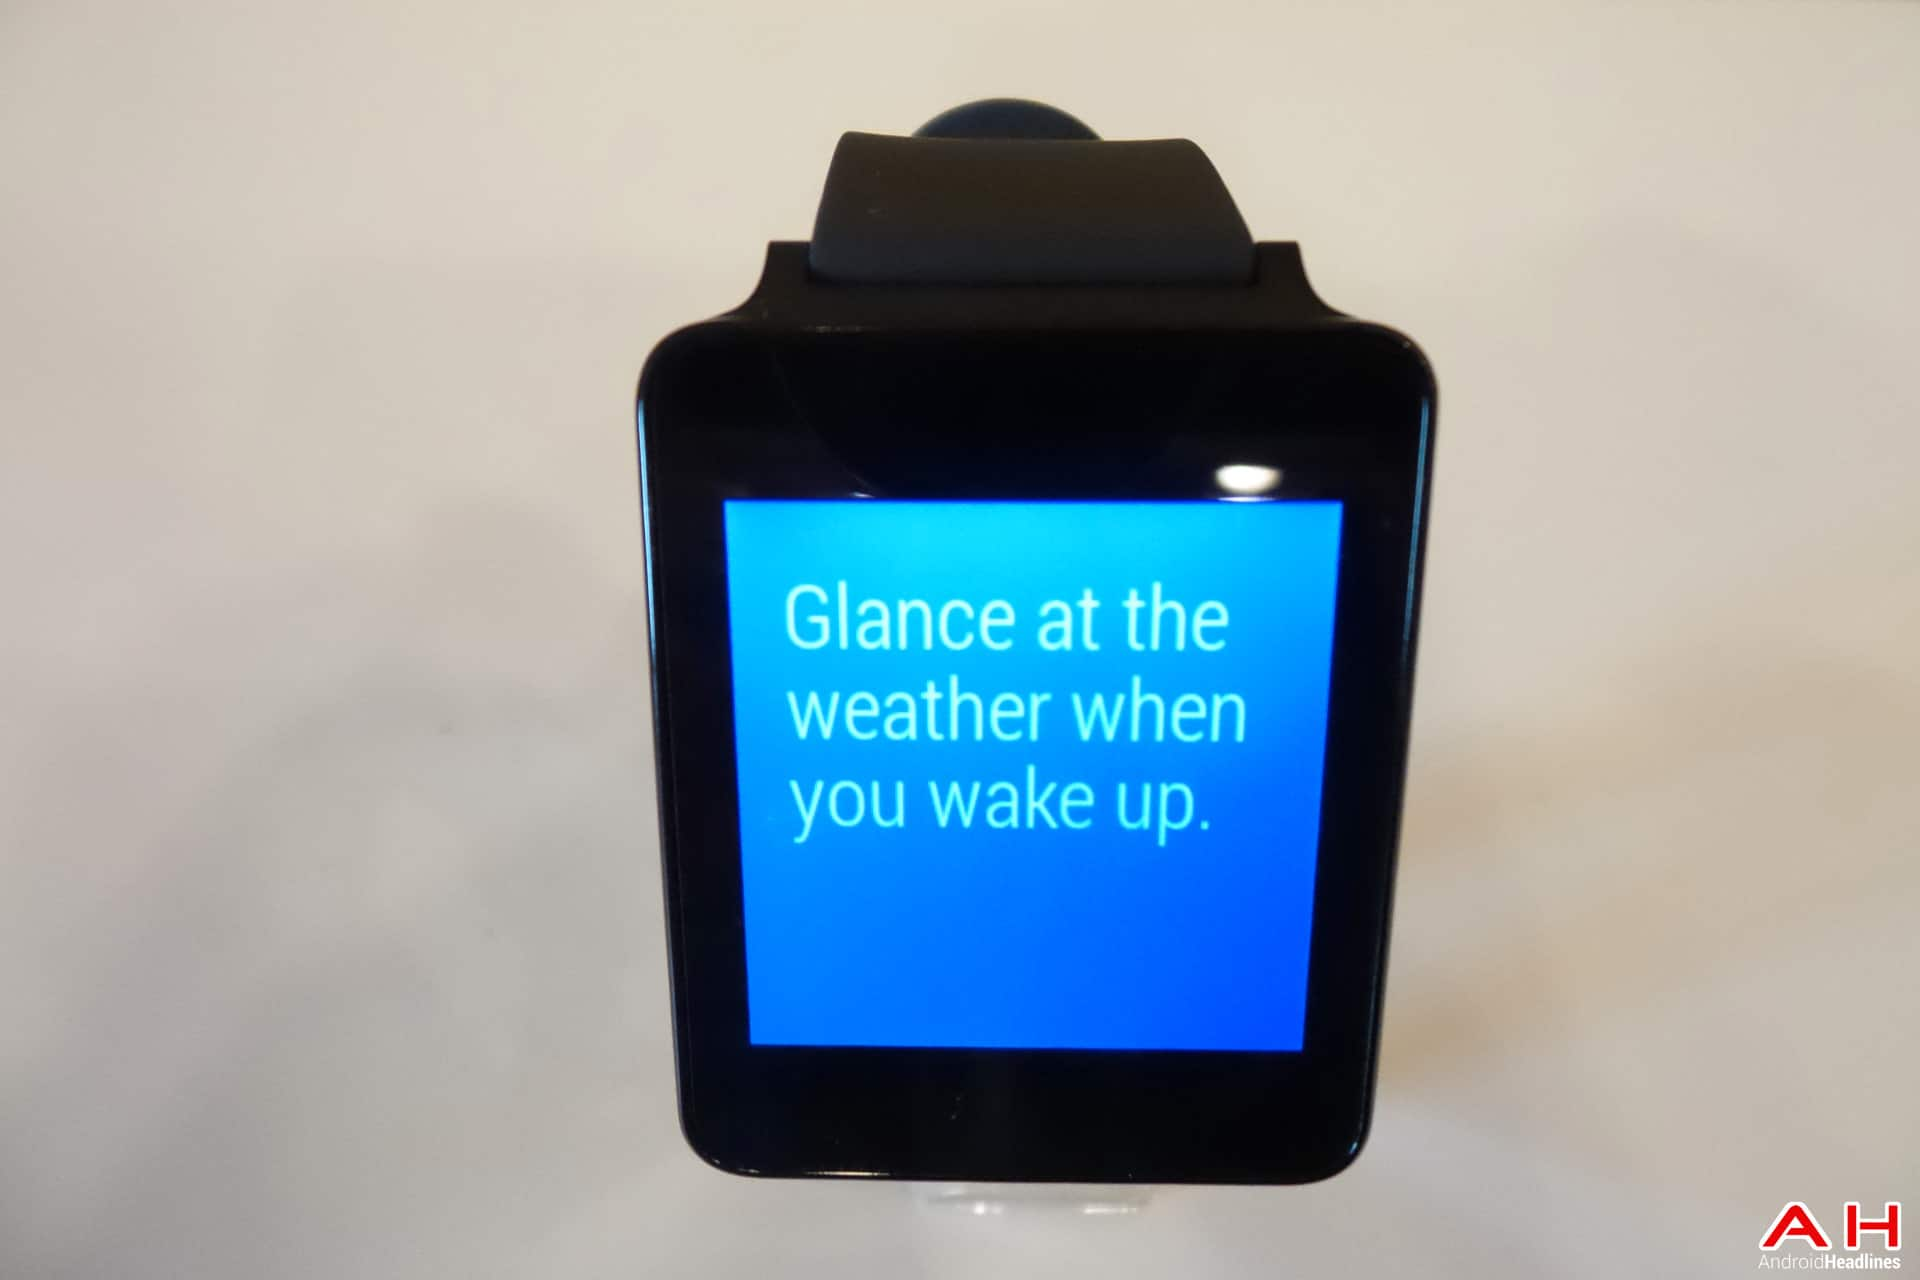 AH Google IO 2014 LG G Watch (9 of 10)